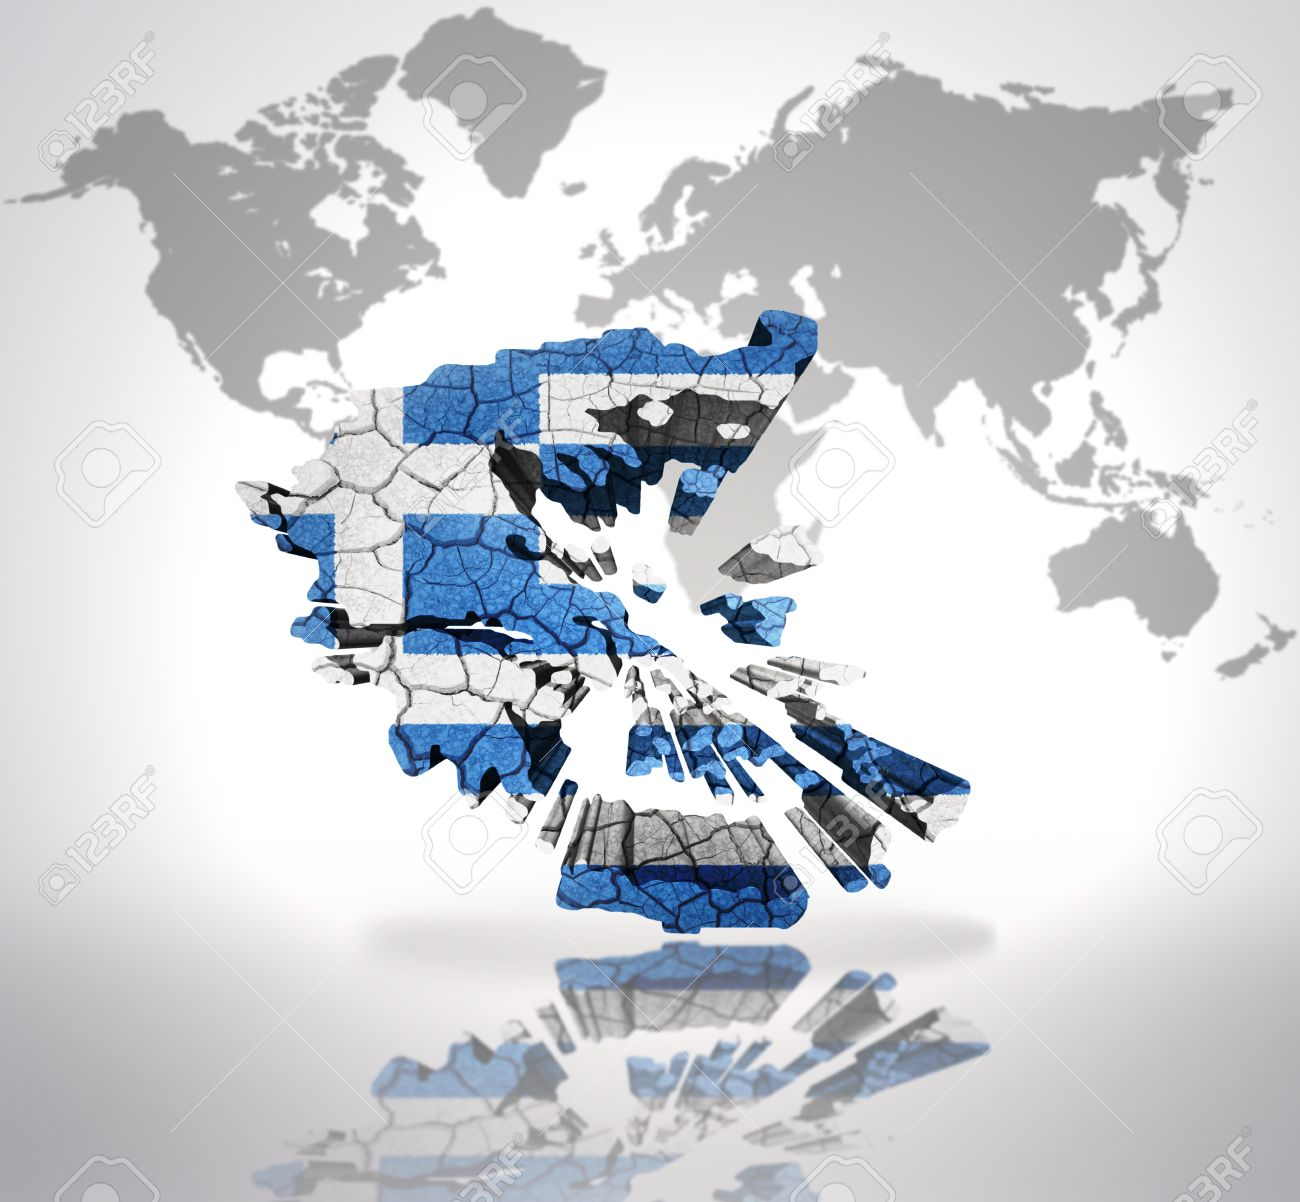 Map of greece with greek flag on a world map background stock photo map of greece with greek flag on a world map background stock photo 32714952 gumiabroncs Choice Image